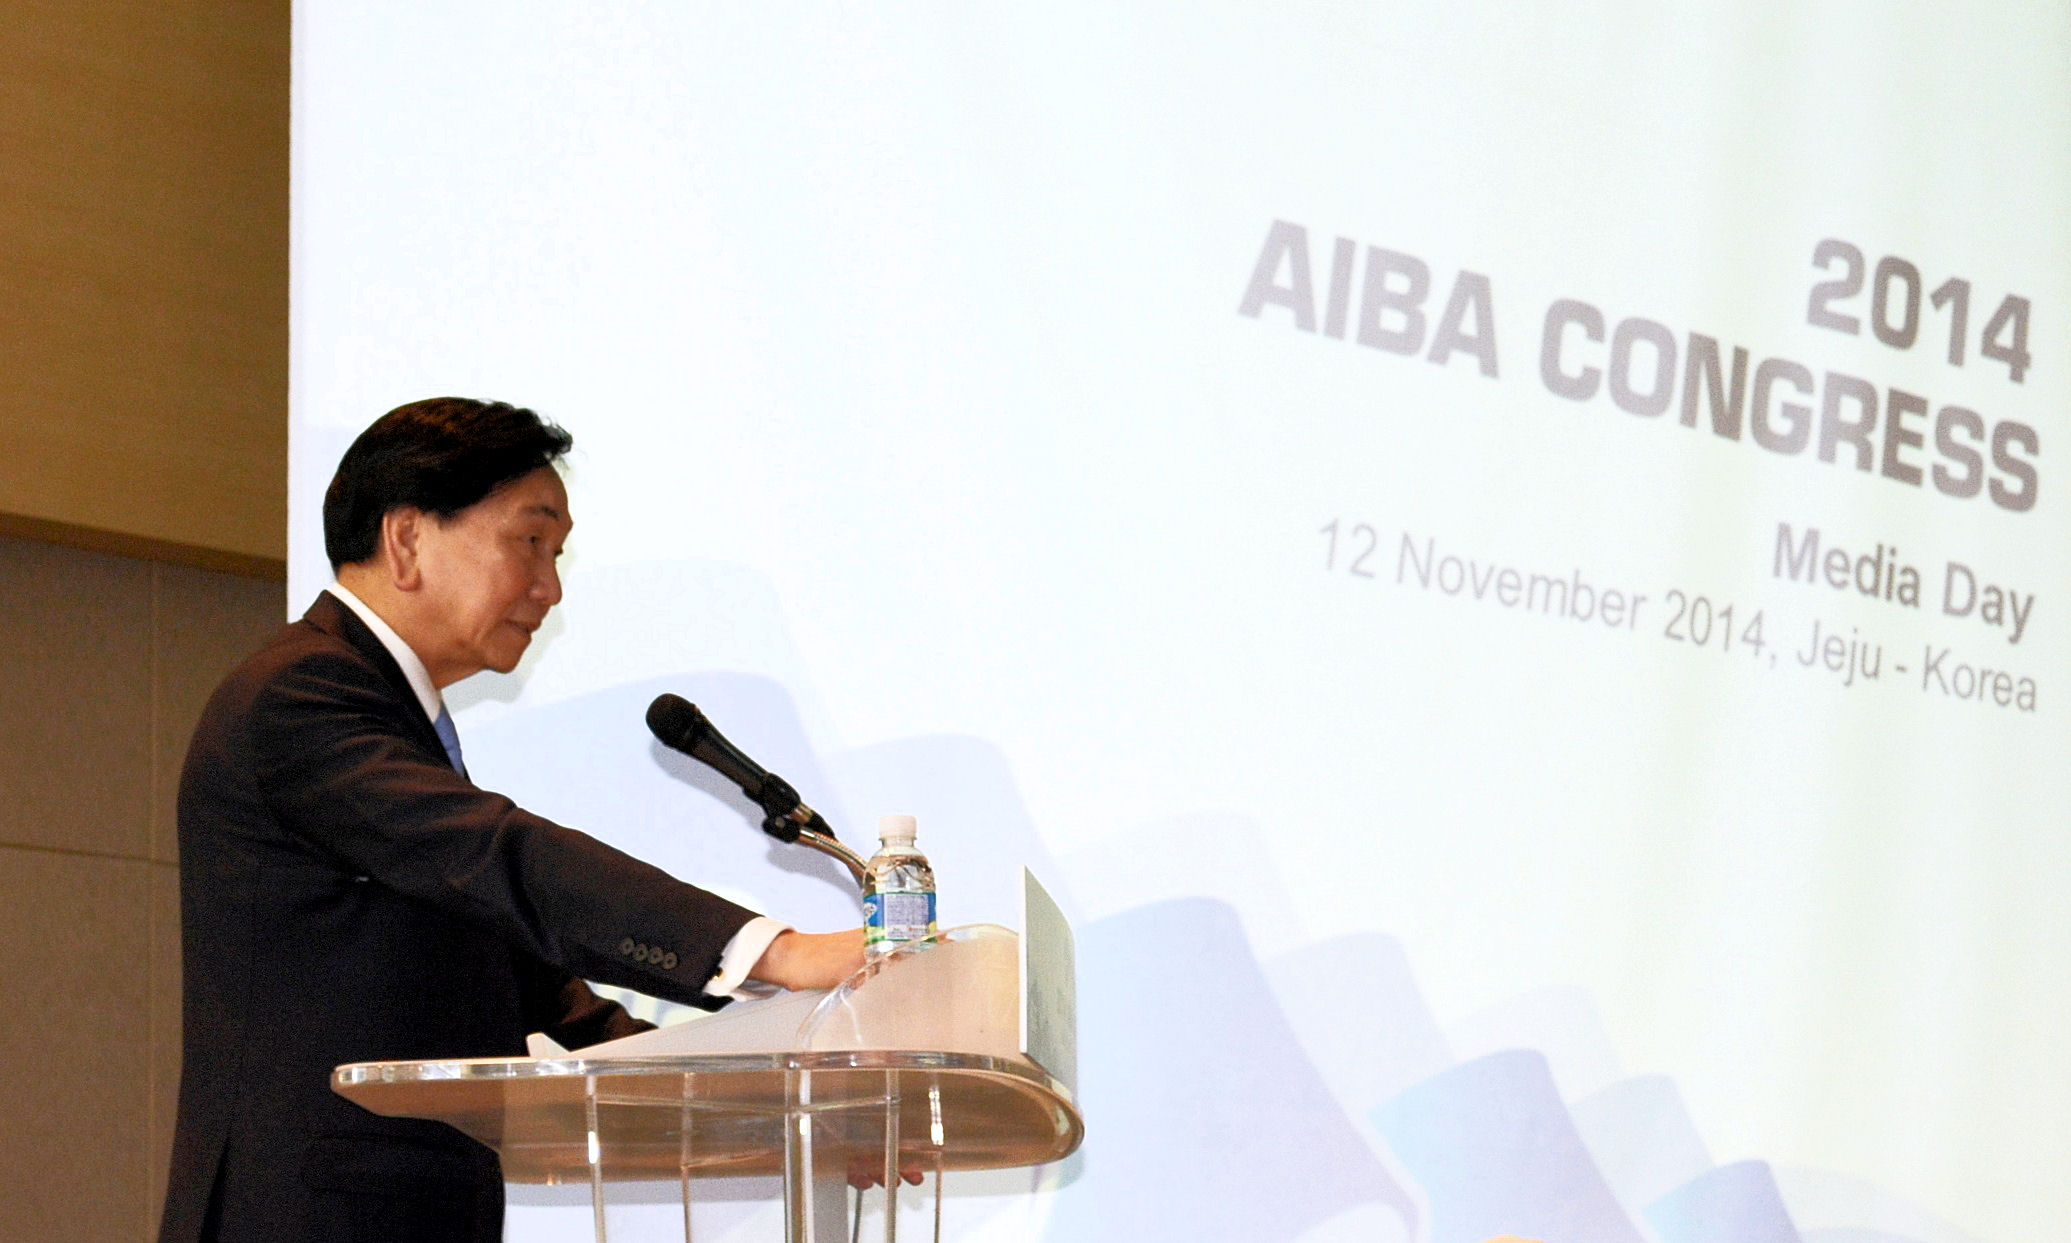 C K Wu is set to be re-elected as AIBA President at the Congress in Jeju ©Valerie von Eberhardt